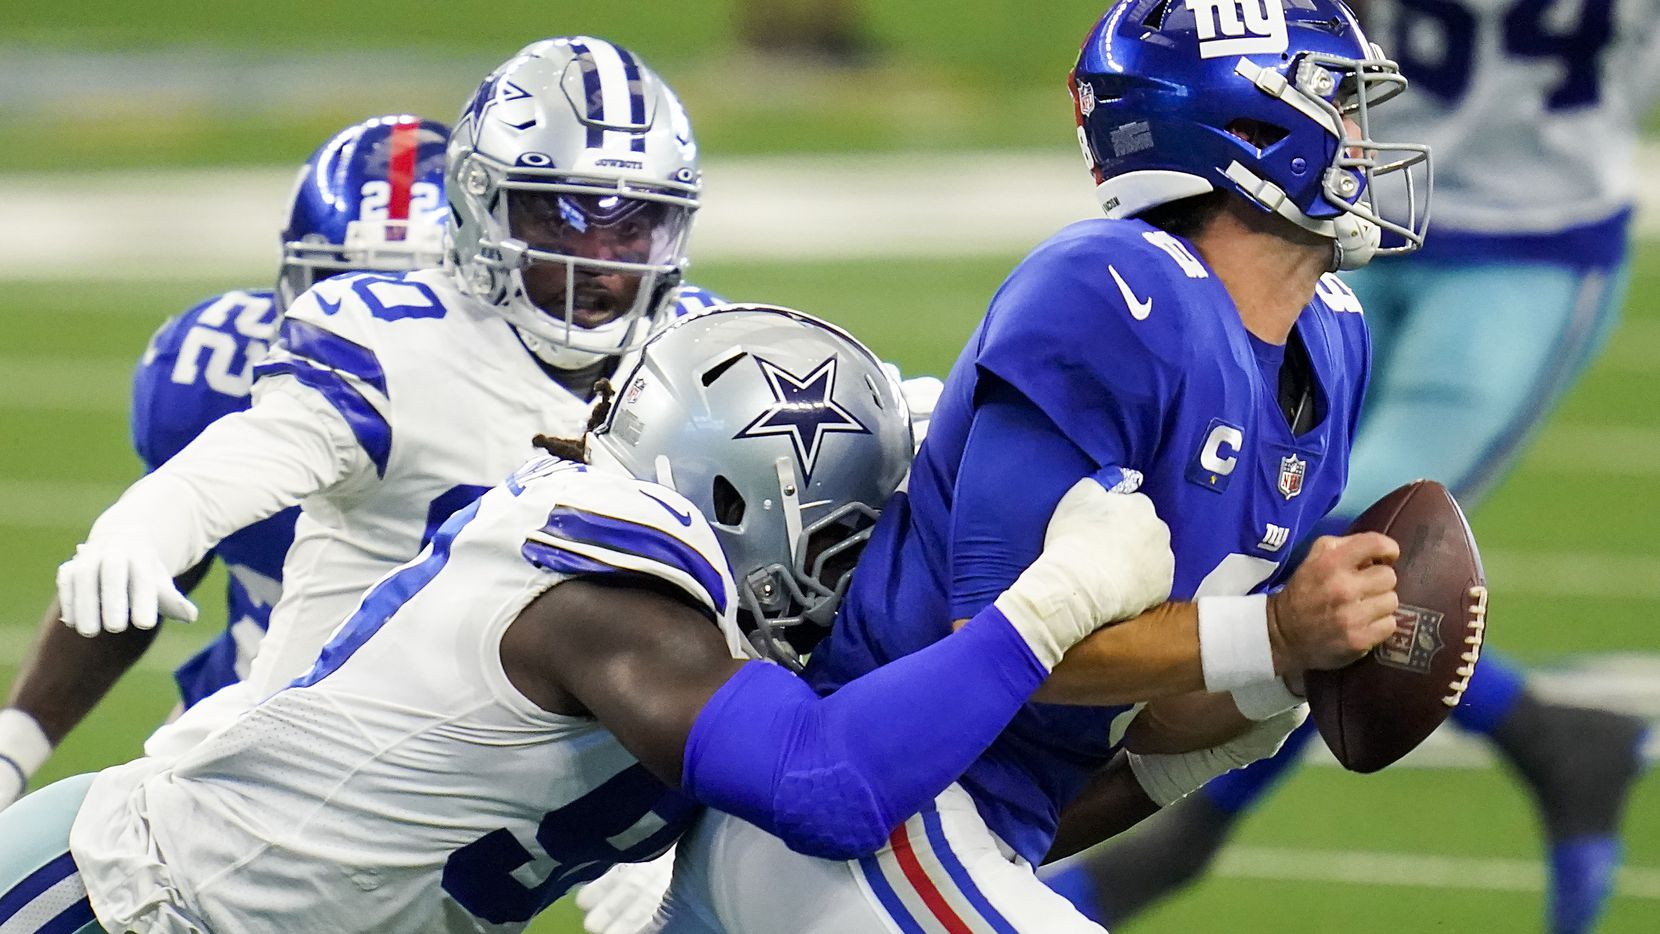 Giants quarterback Daniel Jones (8) fumbles as he's hit by Cowboys defensive end DeMarcus Lawrence (90) during the second quarter of a game at AT&T Stadium on Sunday, Oct. 11, 2020, in Arlington.